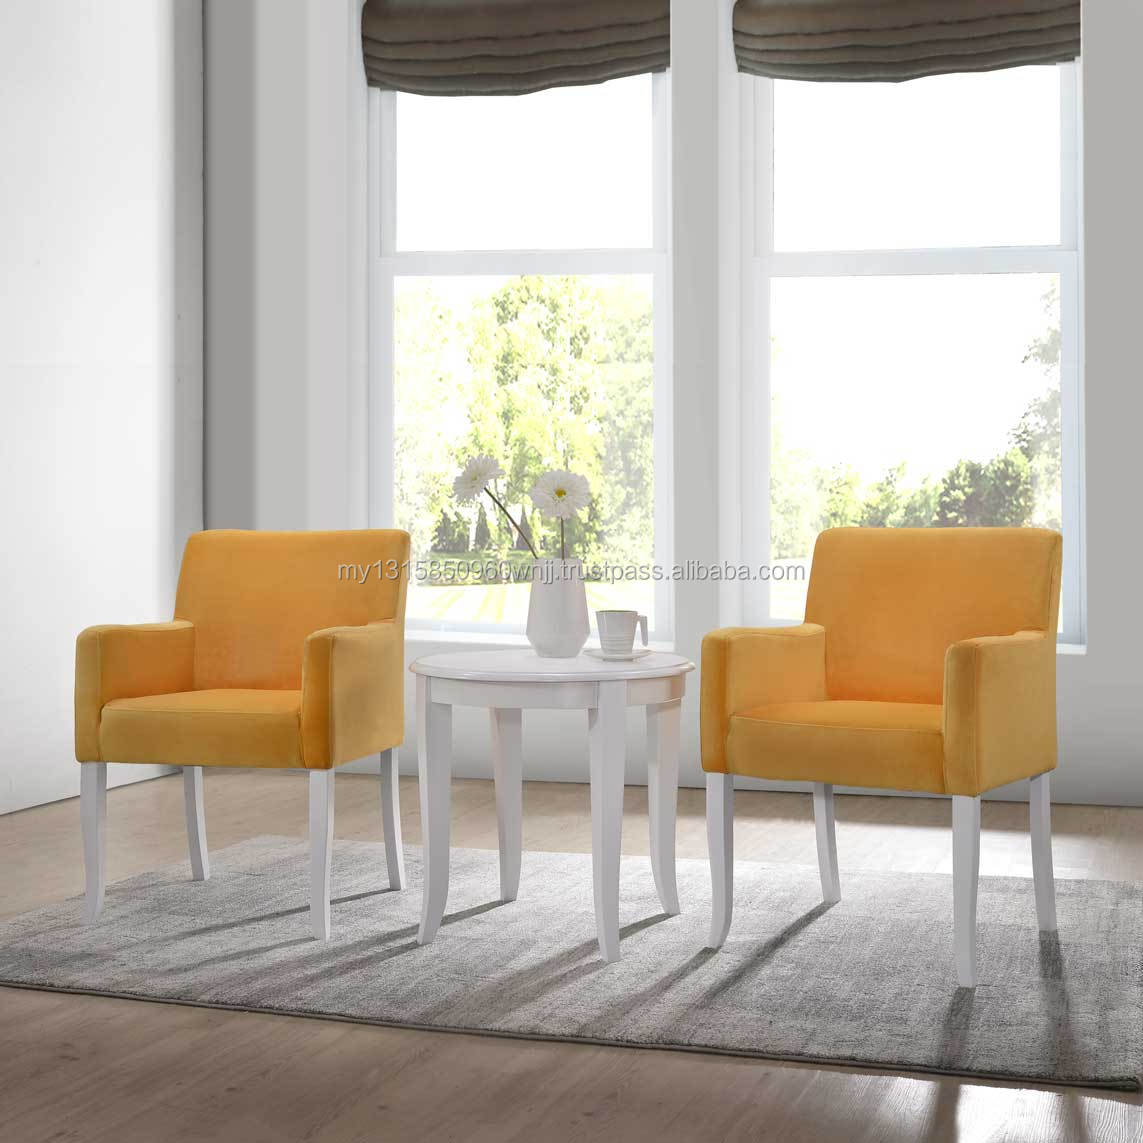 Pleasant Velvet Accent Chair Living Room Sofa 3 Pieces Accent Armchair With End Table Set Buy Parsons Arm Chair Fabric Accent Chairs Hotel Accent Chairs Squirreltailoven Fun Painted Chair Ideas Images Squirreltailovenorg